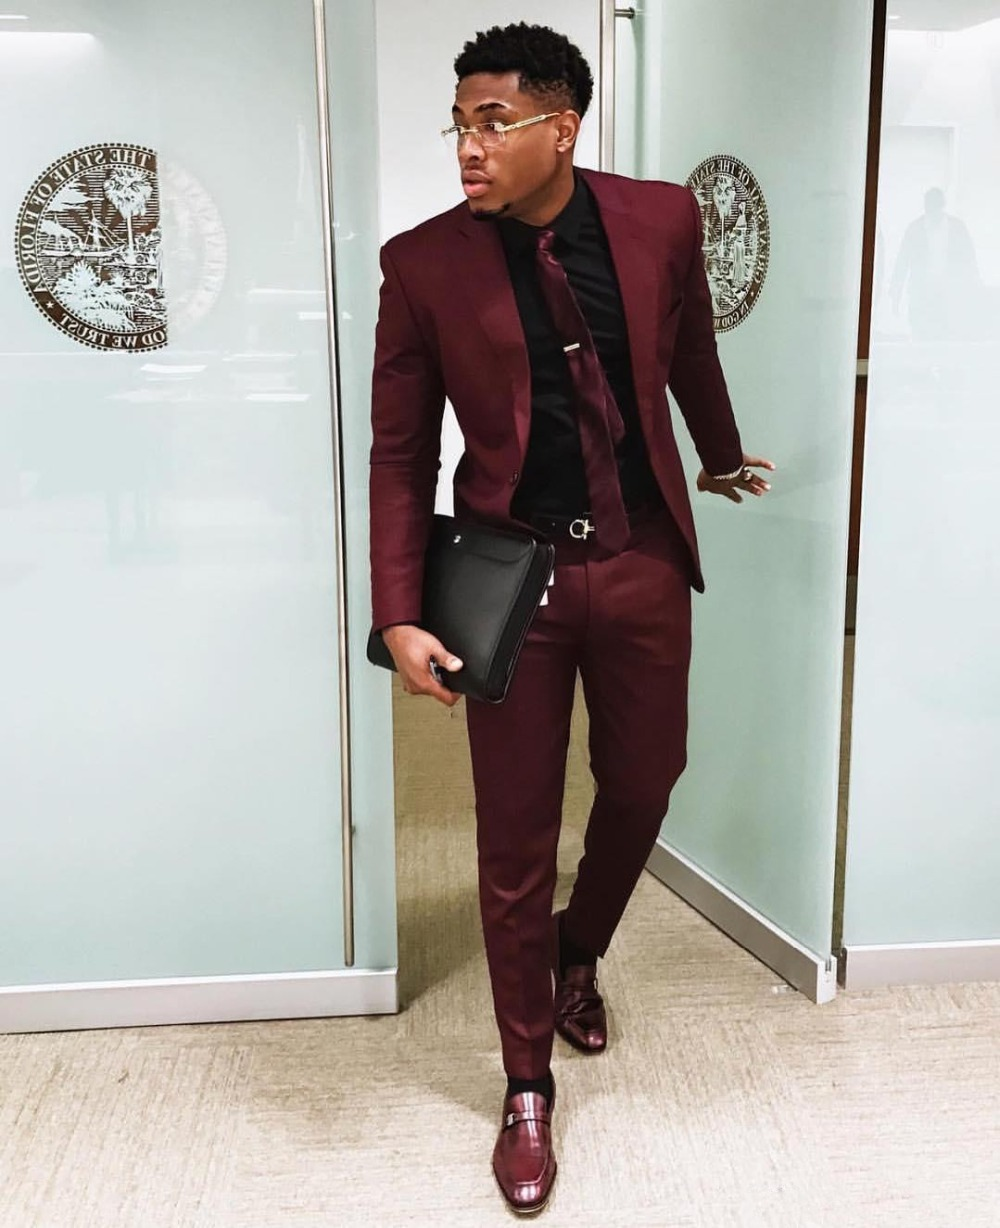 36Burgundy Two Pieces Mens Suits Slim Fit Wedding Grooms Tuxedos Cheap One Button Formal Prom Suit Jacket And Pants